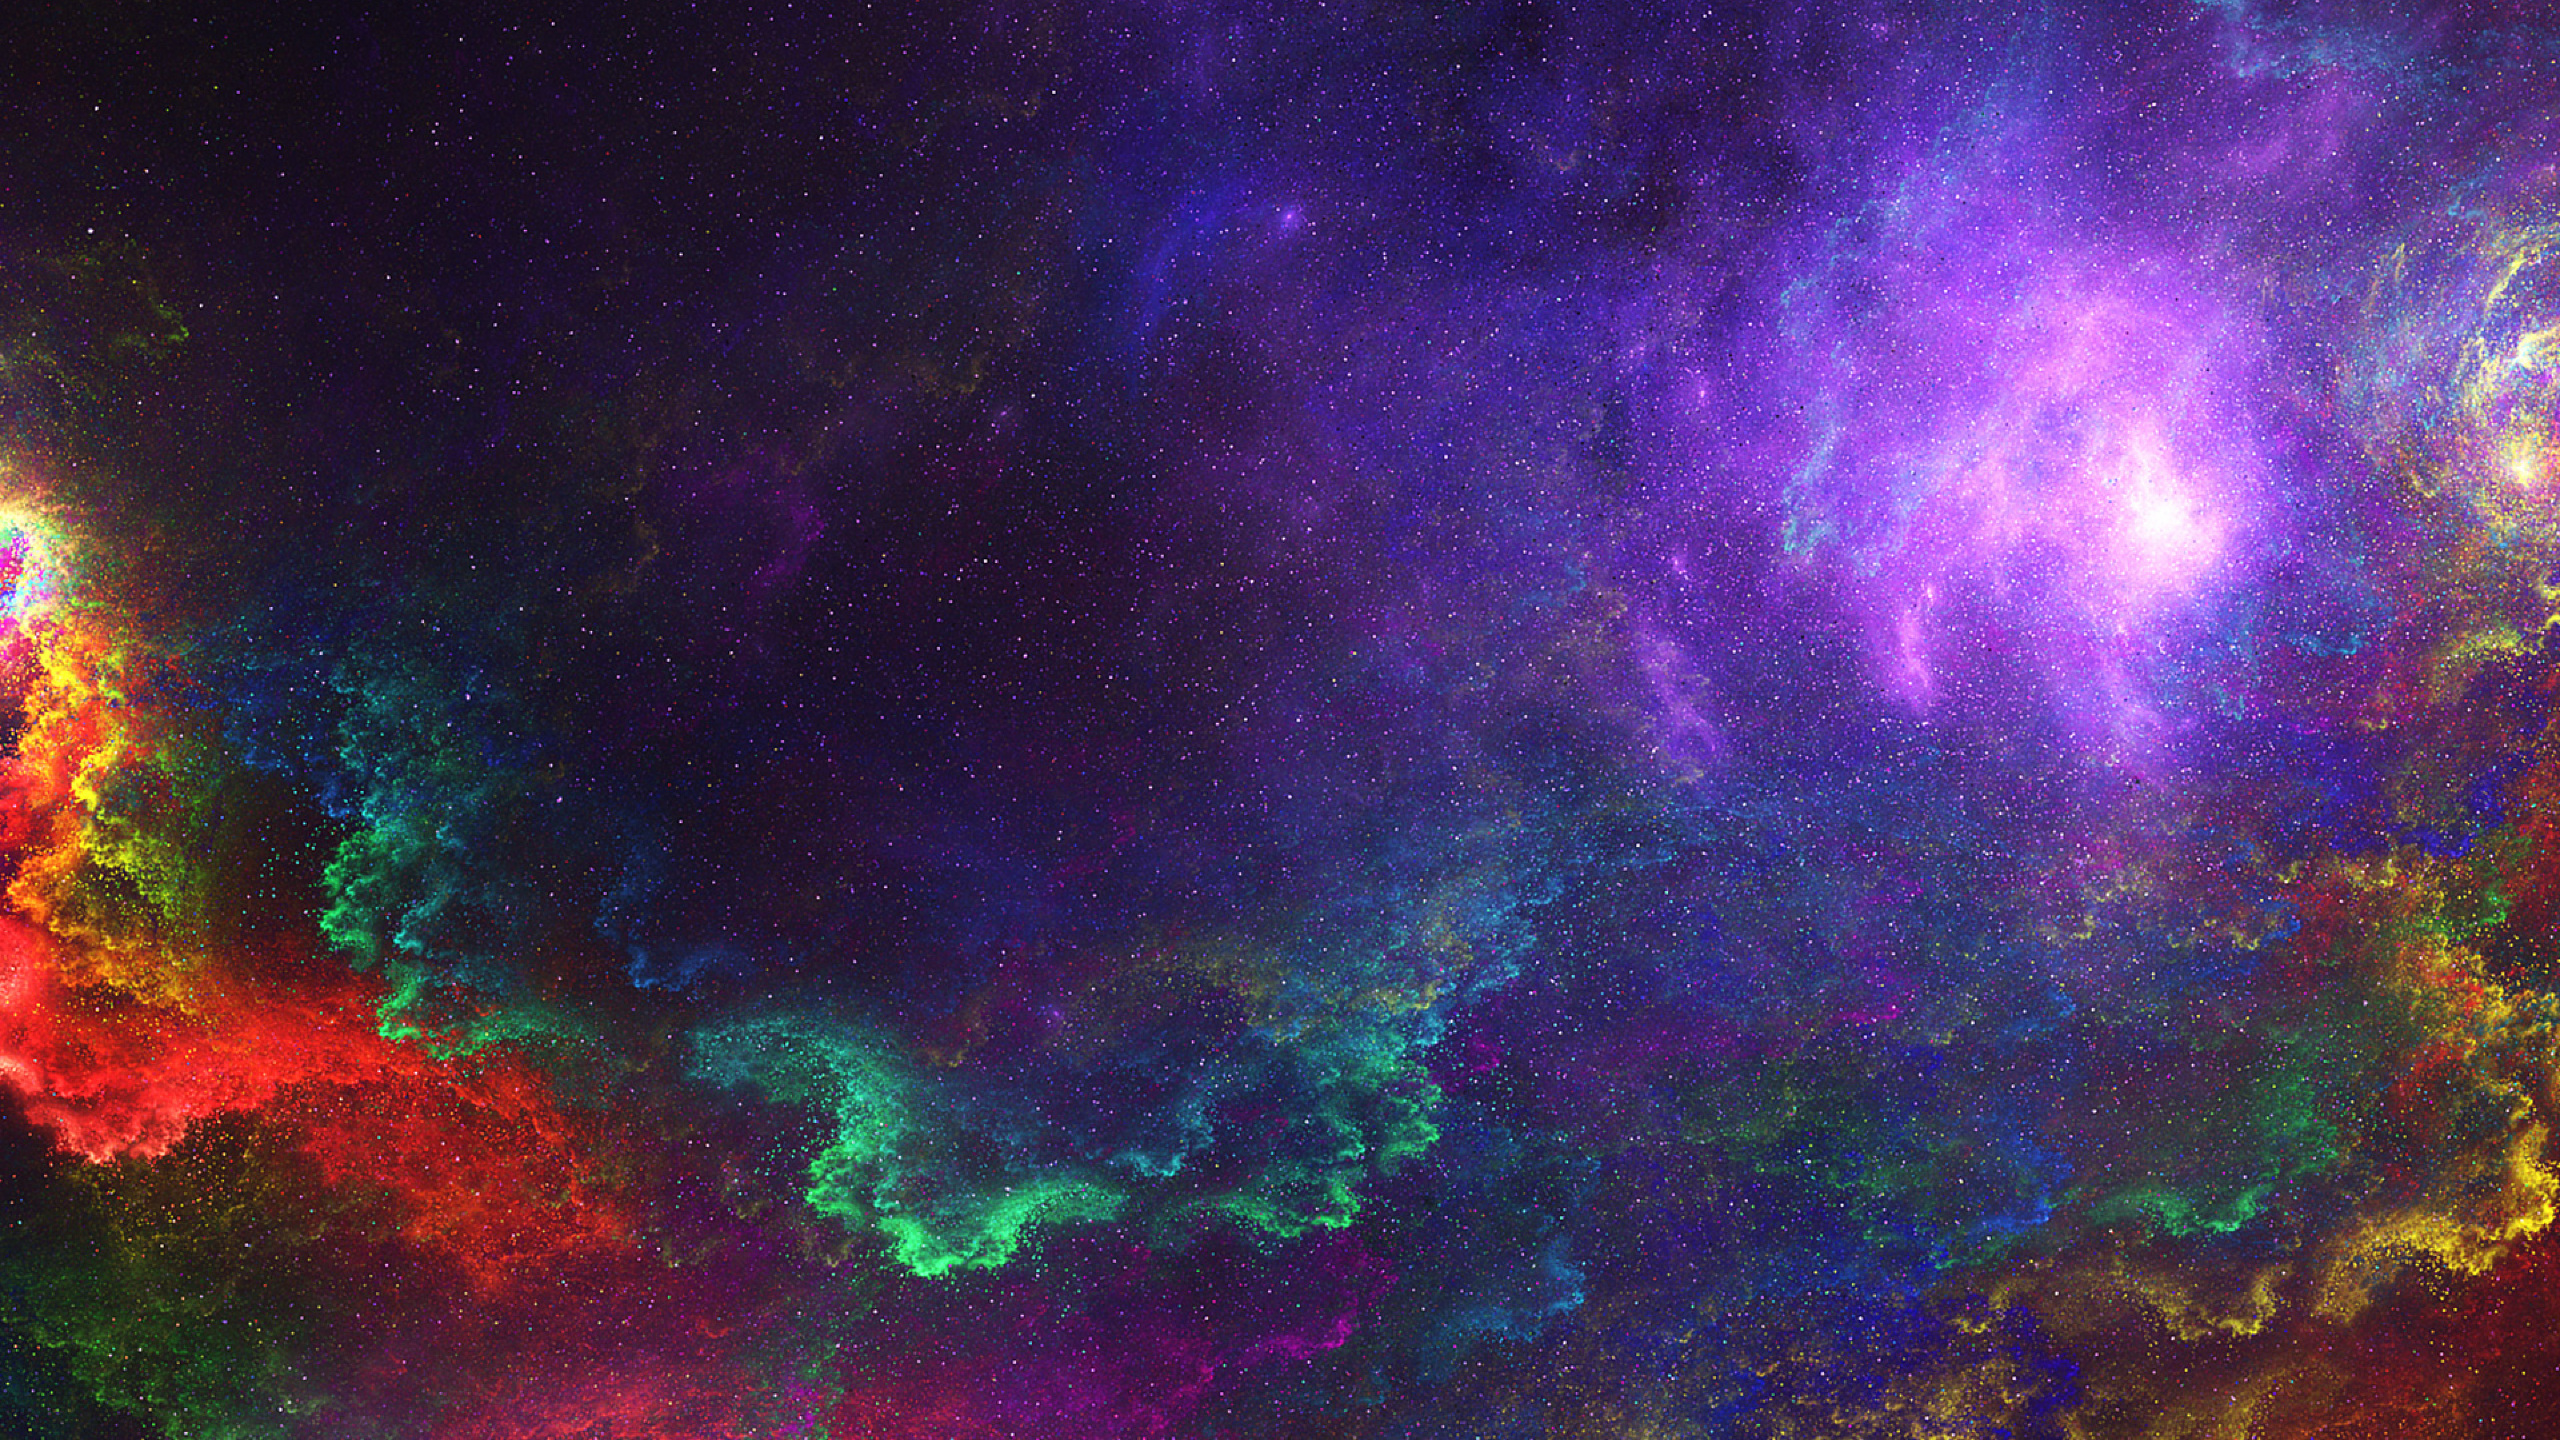 2560x1440 Colorful Space 1440p Resolution Wallpaper Hd Artist 4k Wallpapers Images Photos And Background